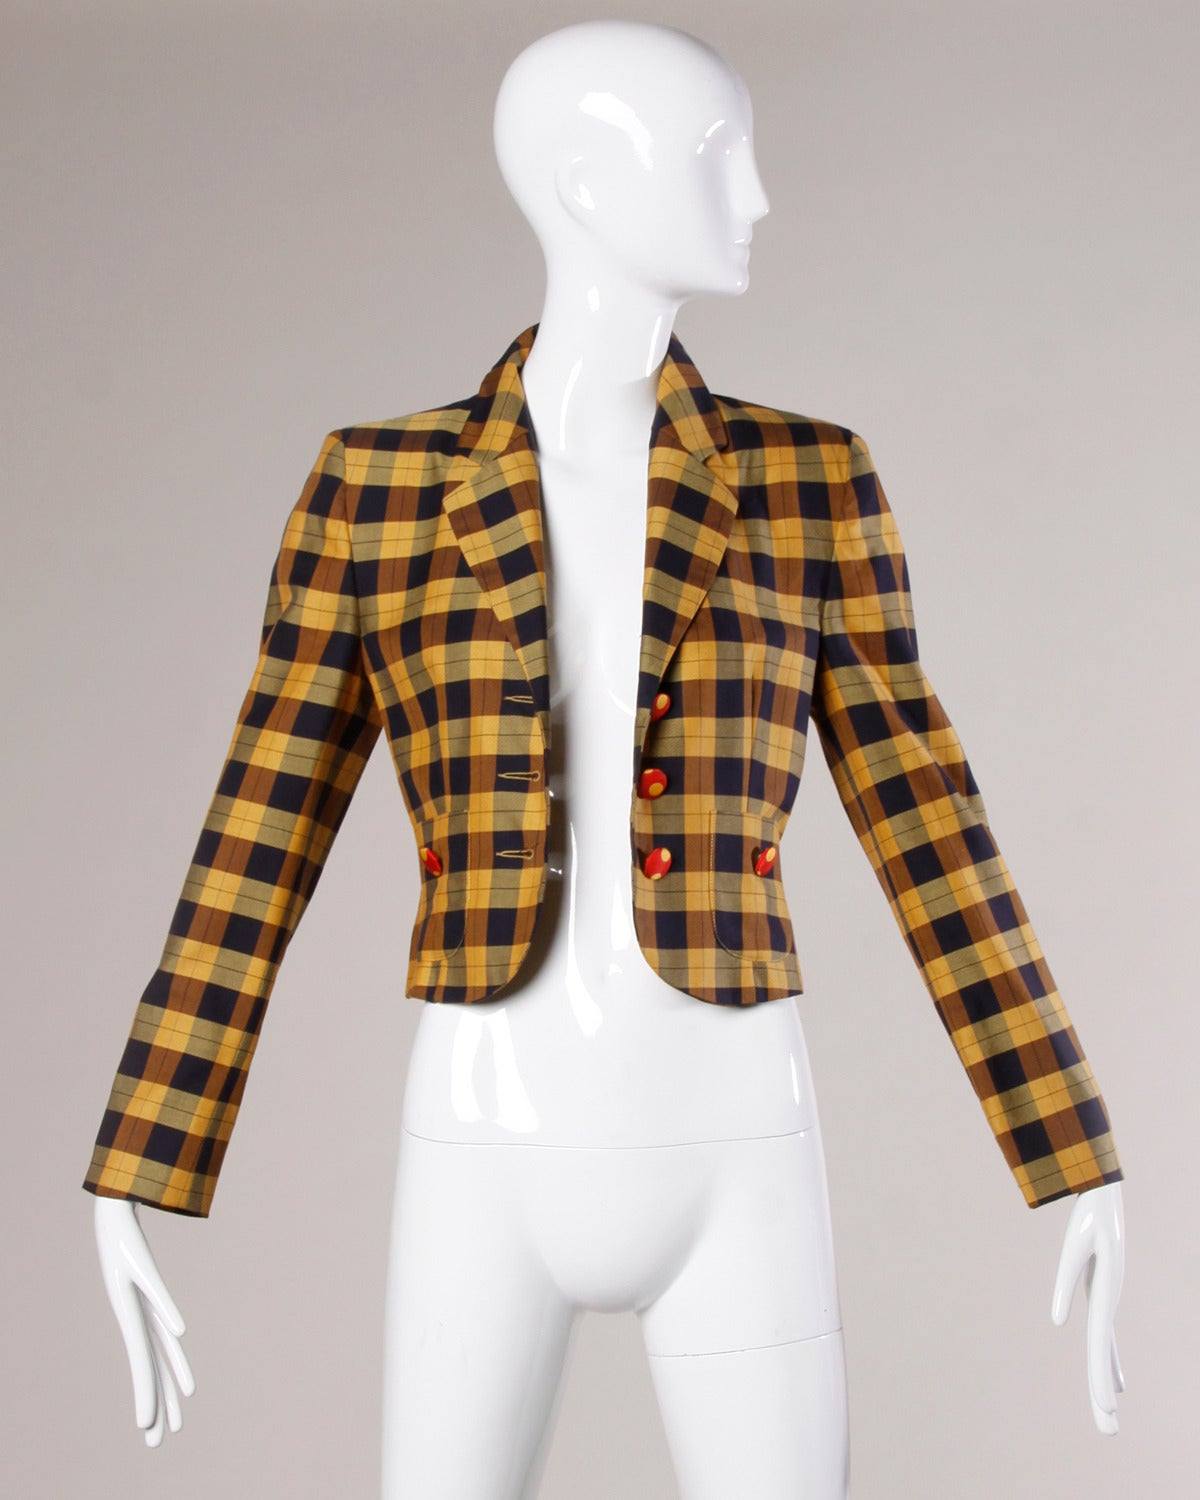 Vintage plaid Moschino jacket with polka dot lining and covered buttons.  Details:  Fully Lined Front Pockets Shoulder Pads Are Sewn Into Lining Front Button Closure Marked Size: I 42/ US 8/ GB 10/ F 38/ D 38 Fabric: 100% Rayon Label: